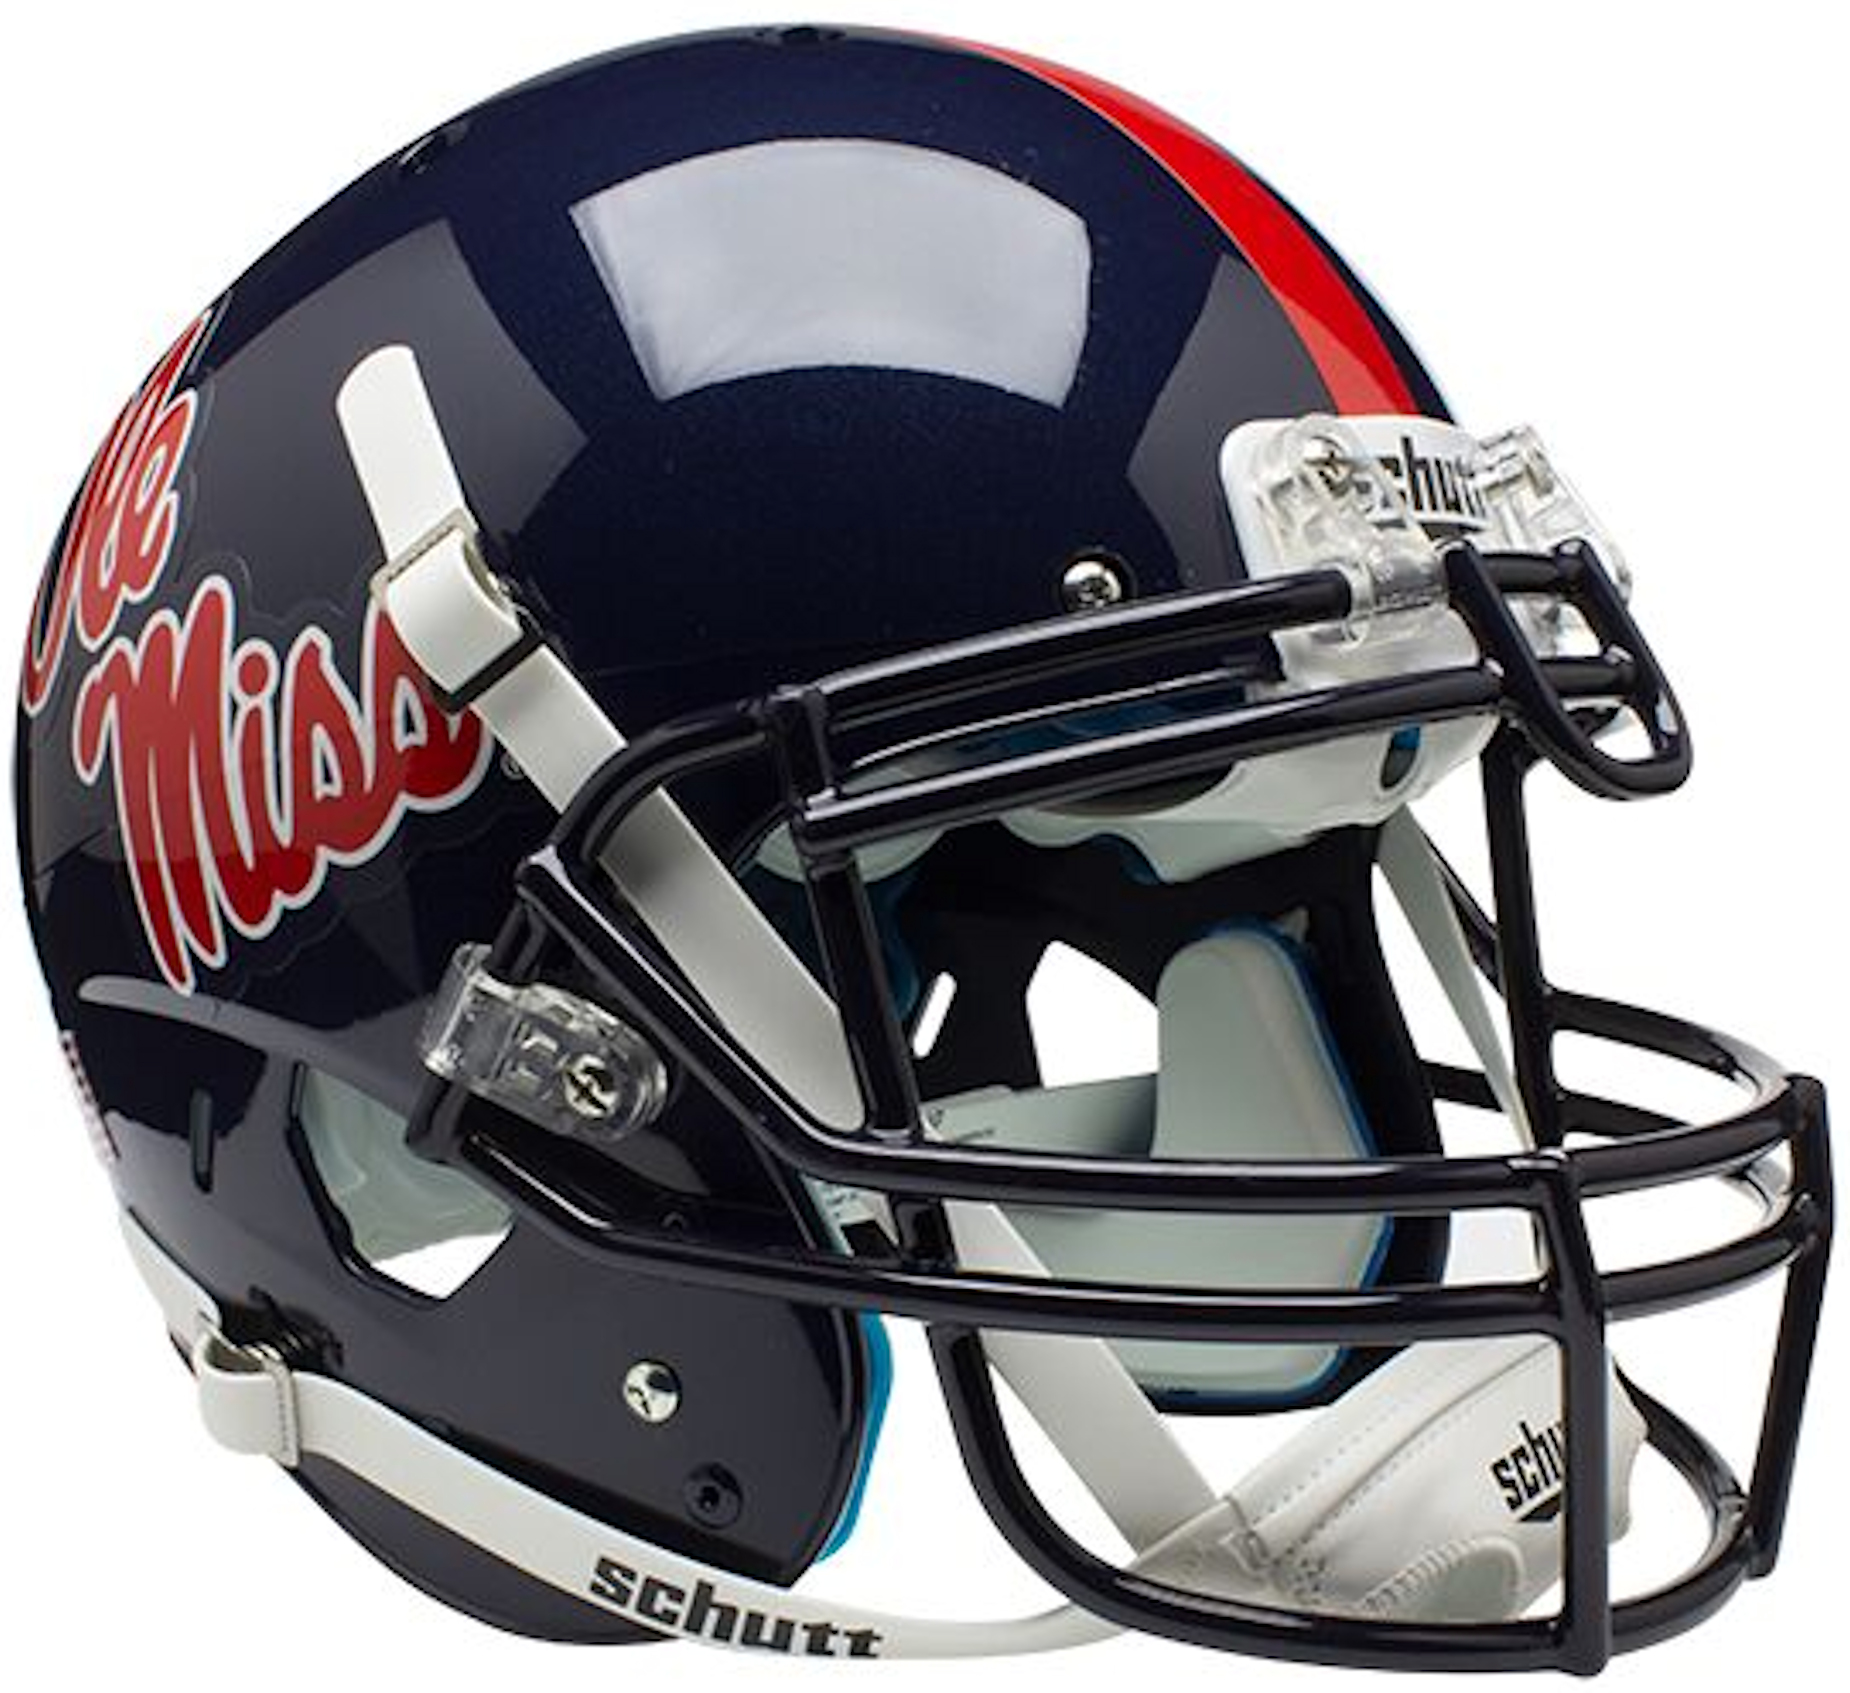 Mississippi (Ole Miss) Rebels Authentic College XP Football Helmet Schutt